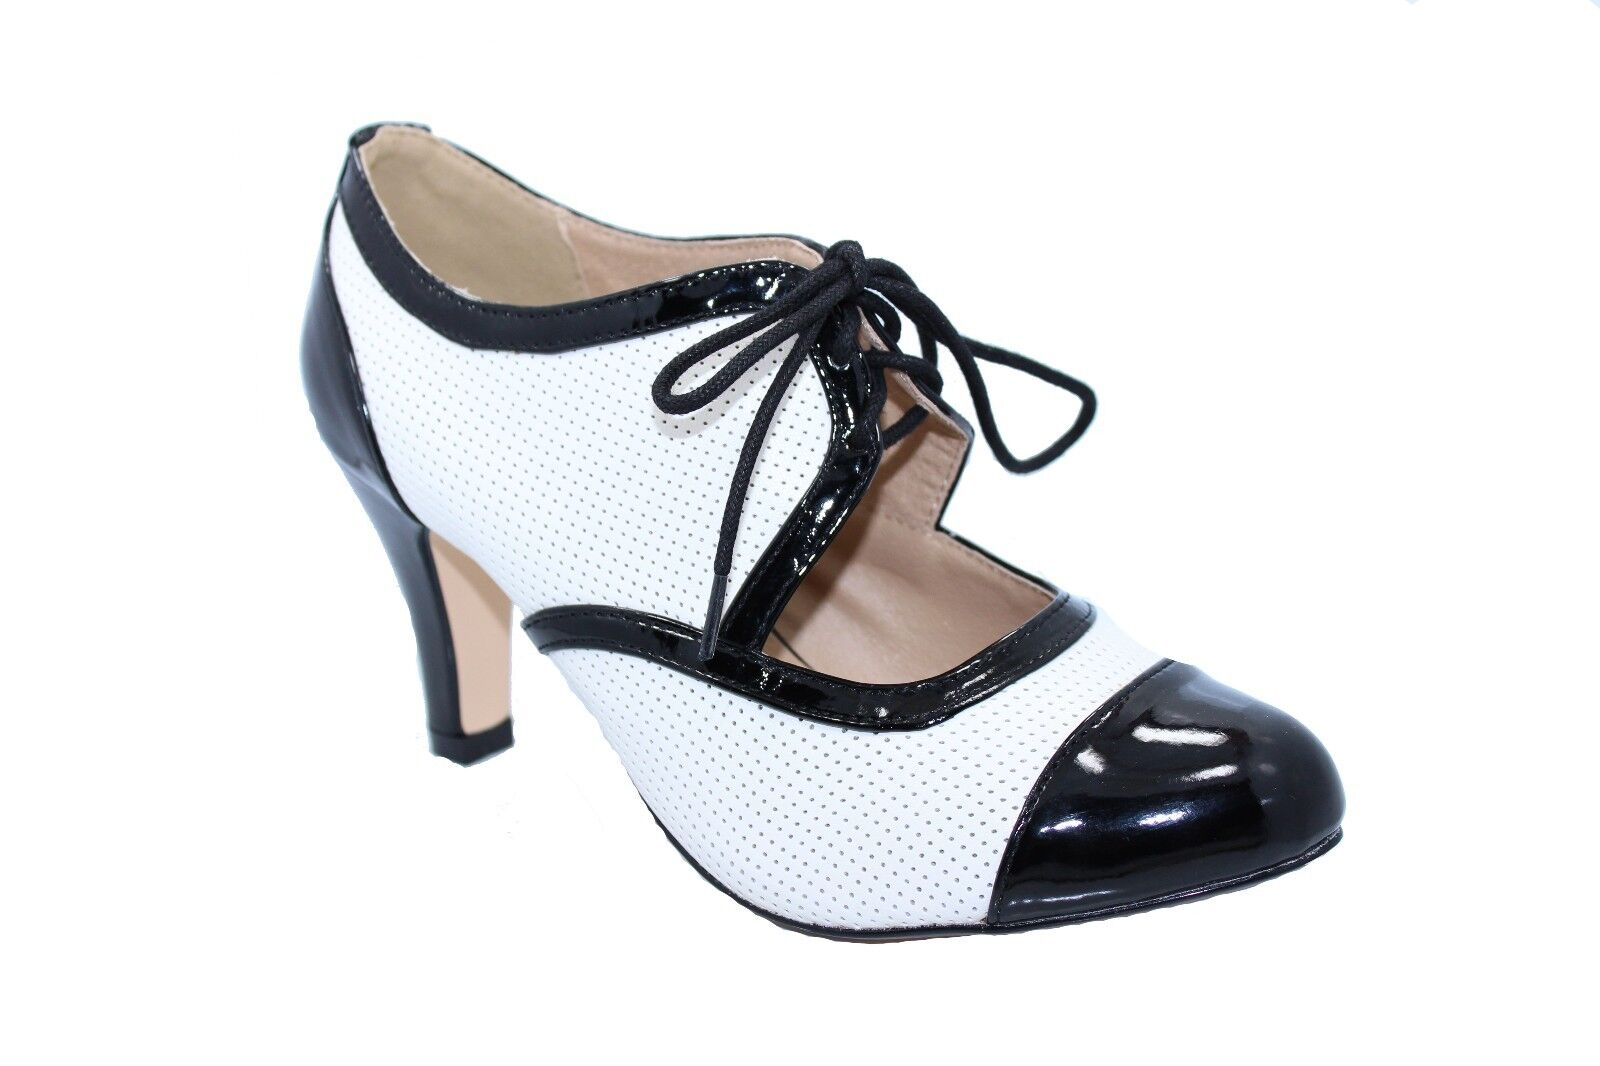 Chelsea Crew GALA Two Tone Oxford Heels with Patent Toe-Cap